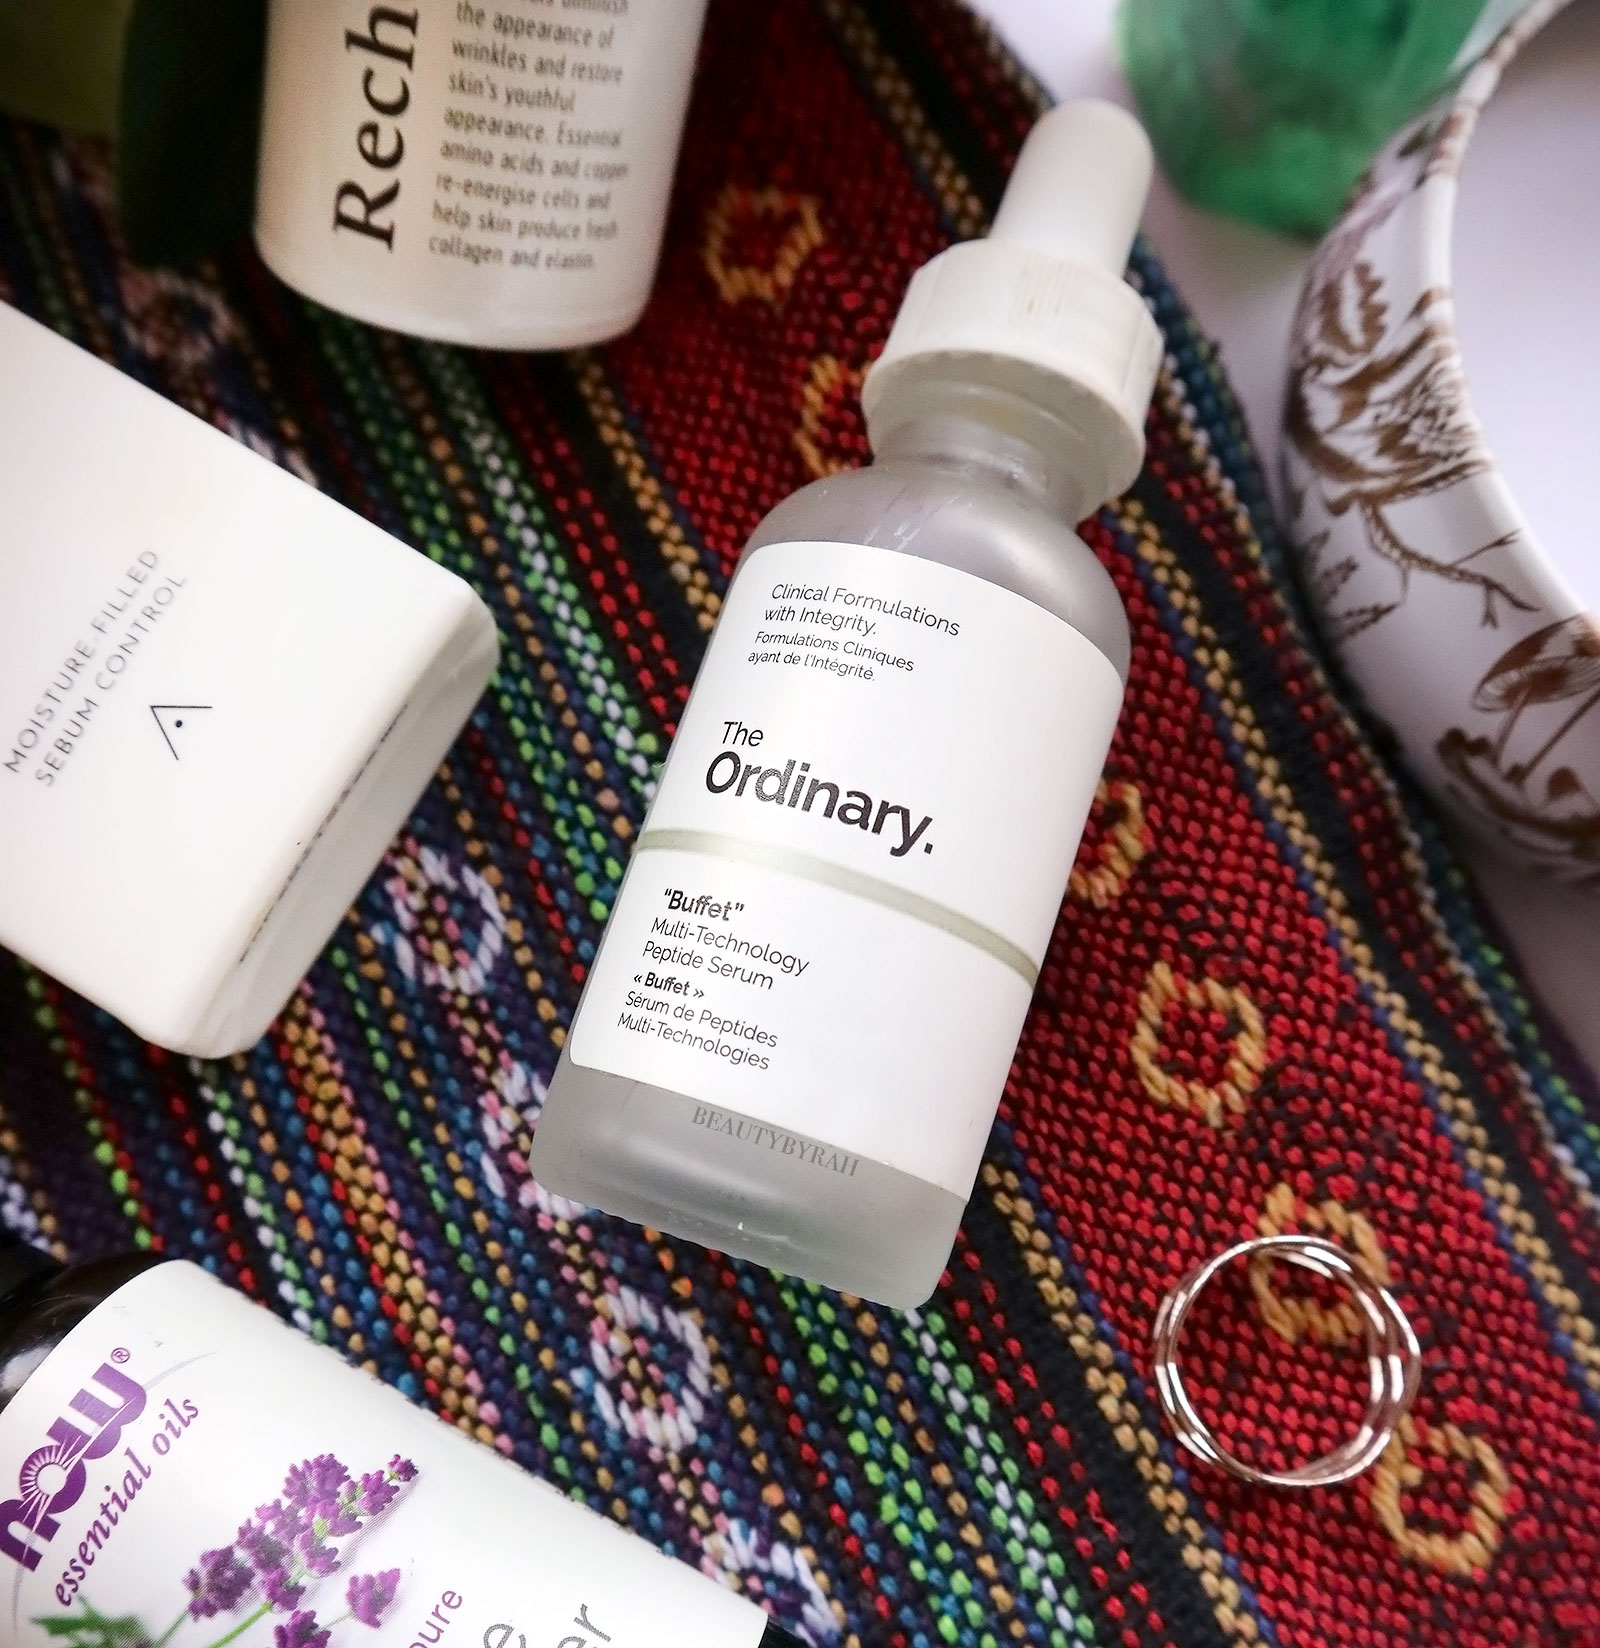 The ordinary buffet peptide serum review